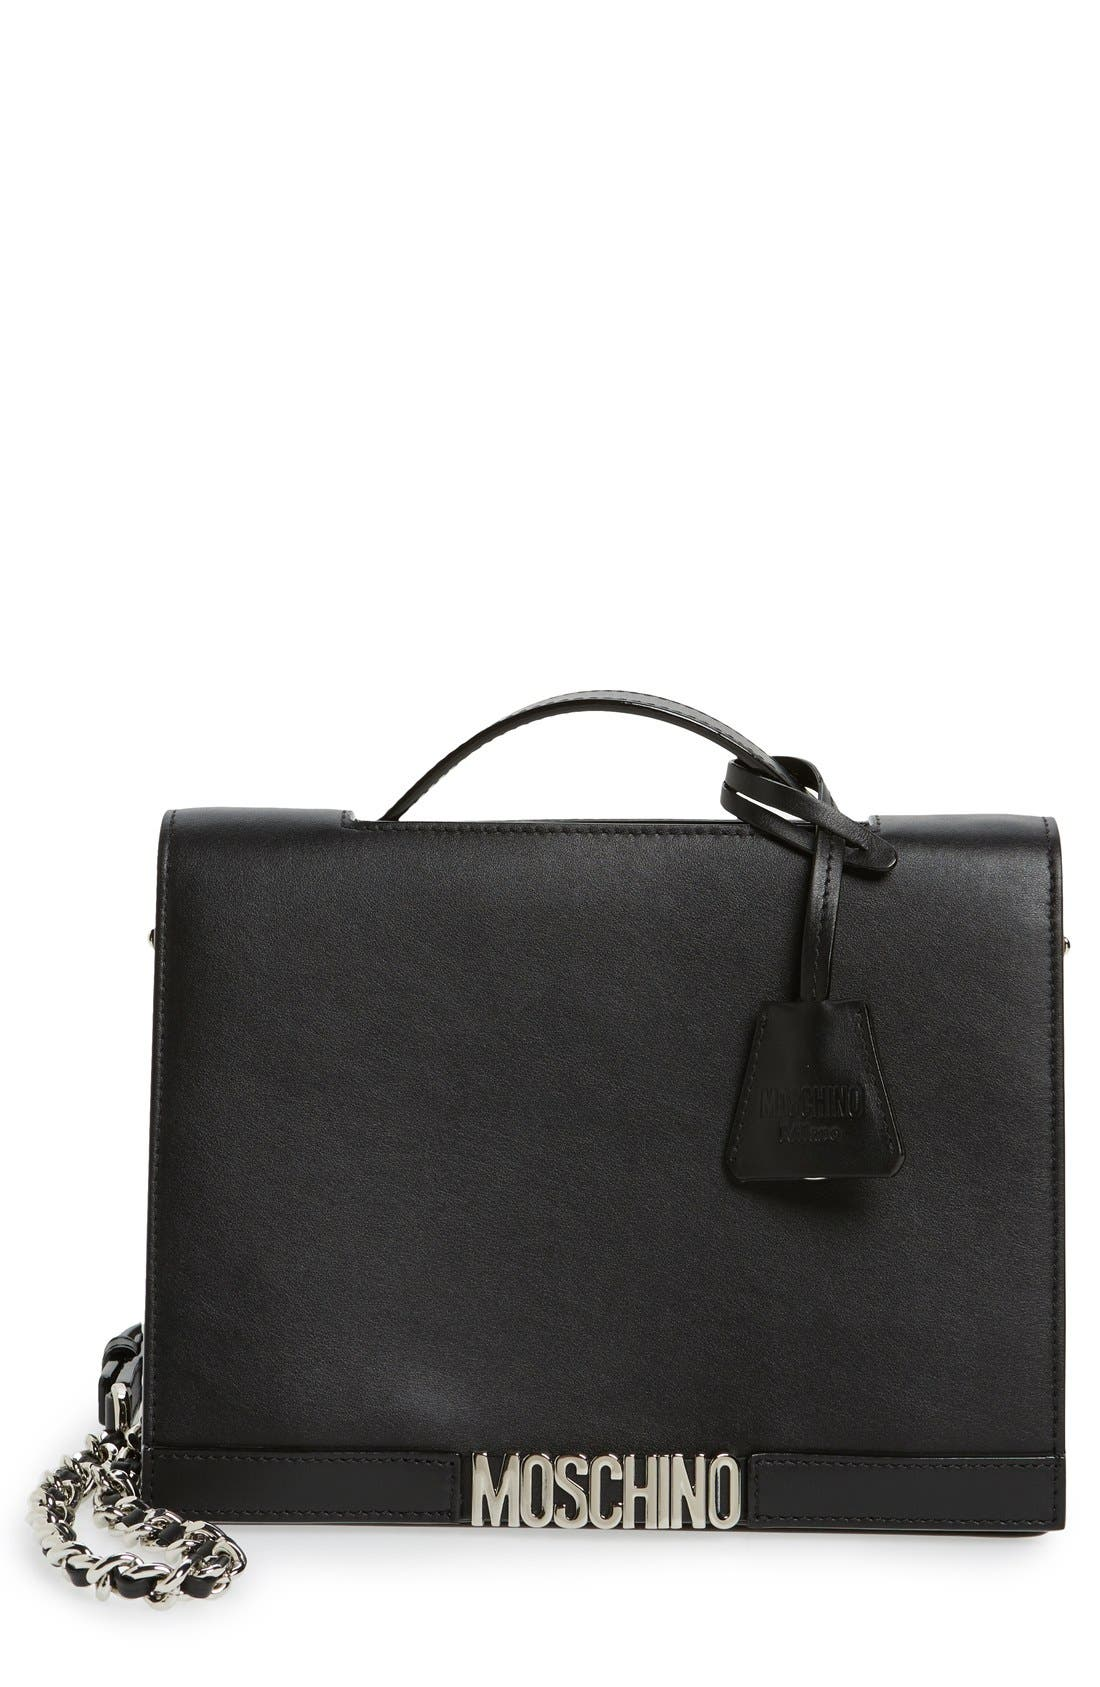 Alternate Image 1 Selected - Moschino Top Handle Leather Crossbody Bag